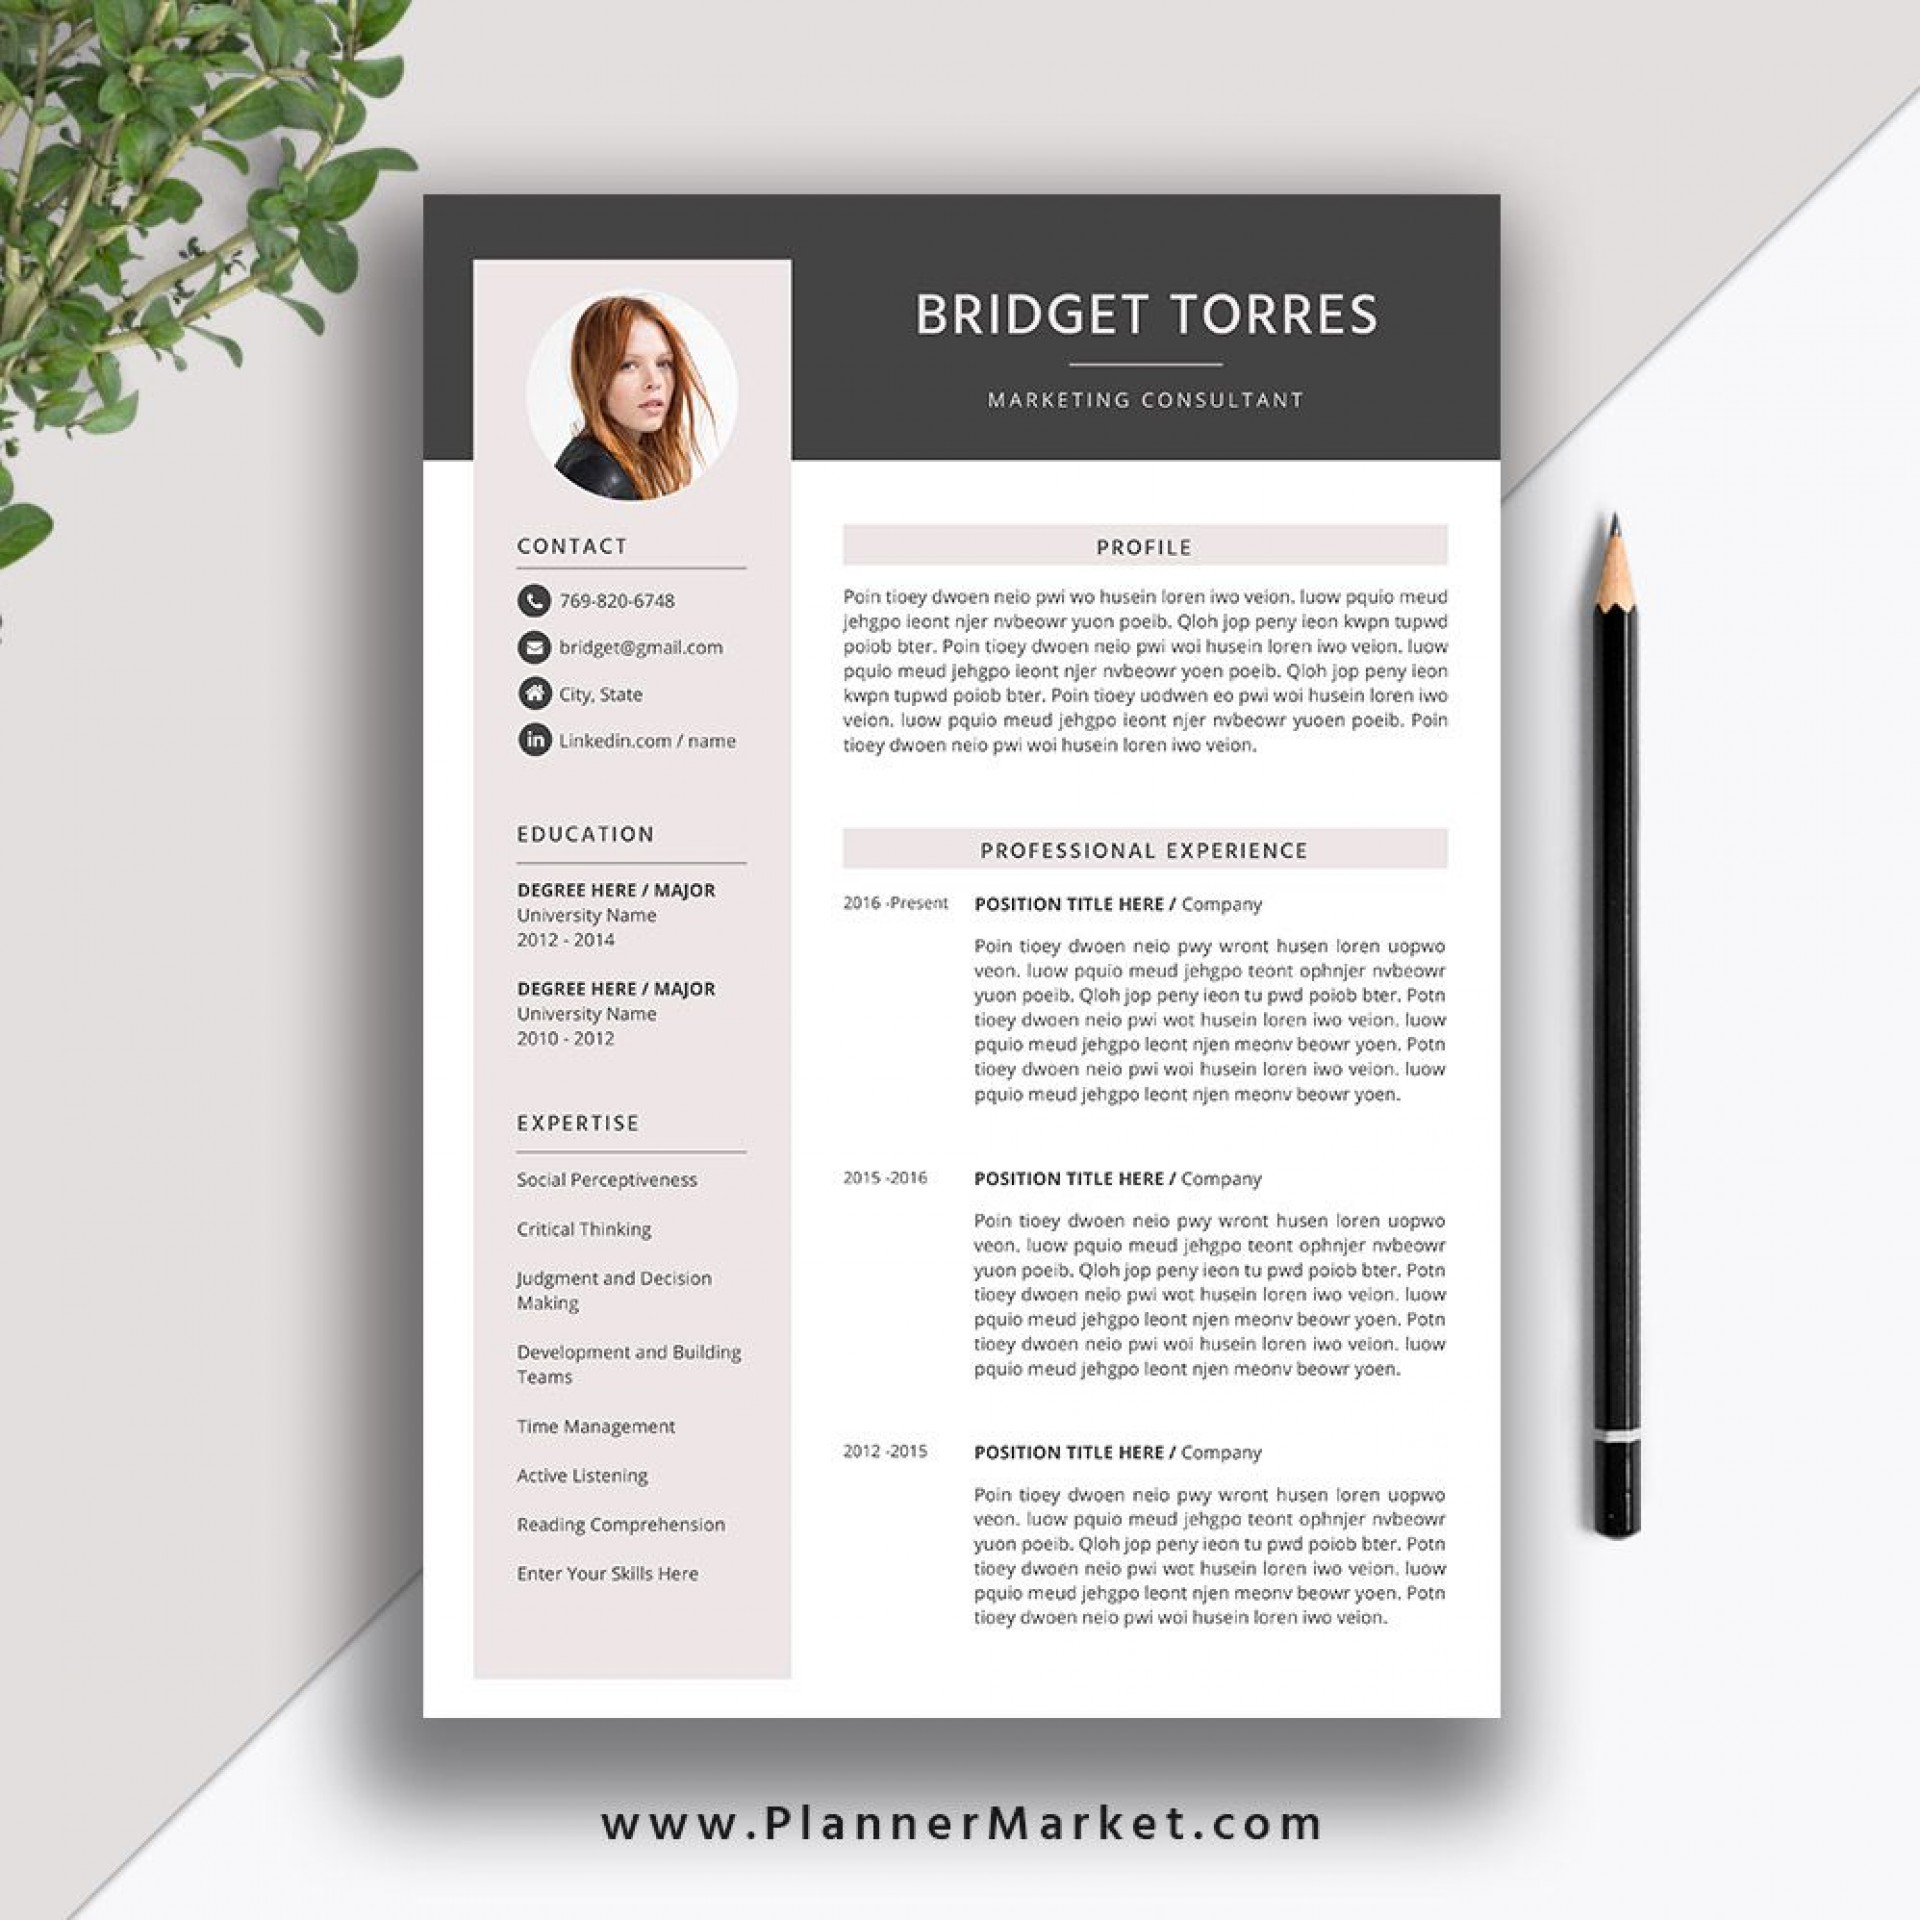 007 Unique Microsoft Word Resume Template 2020 Idea  Free1920